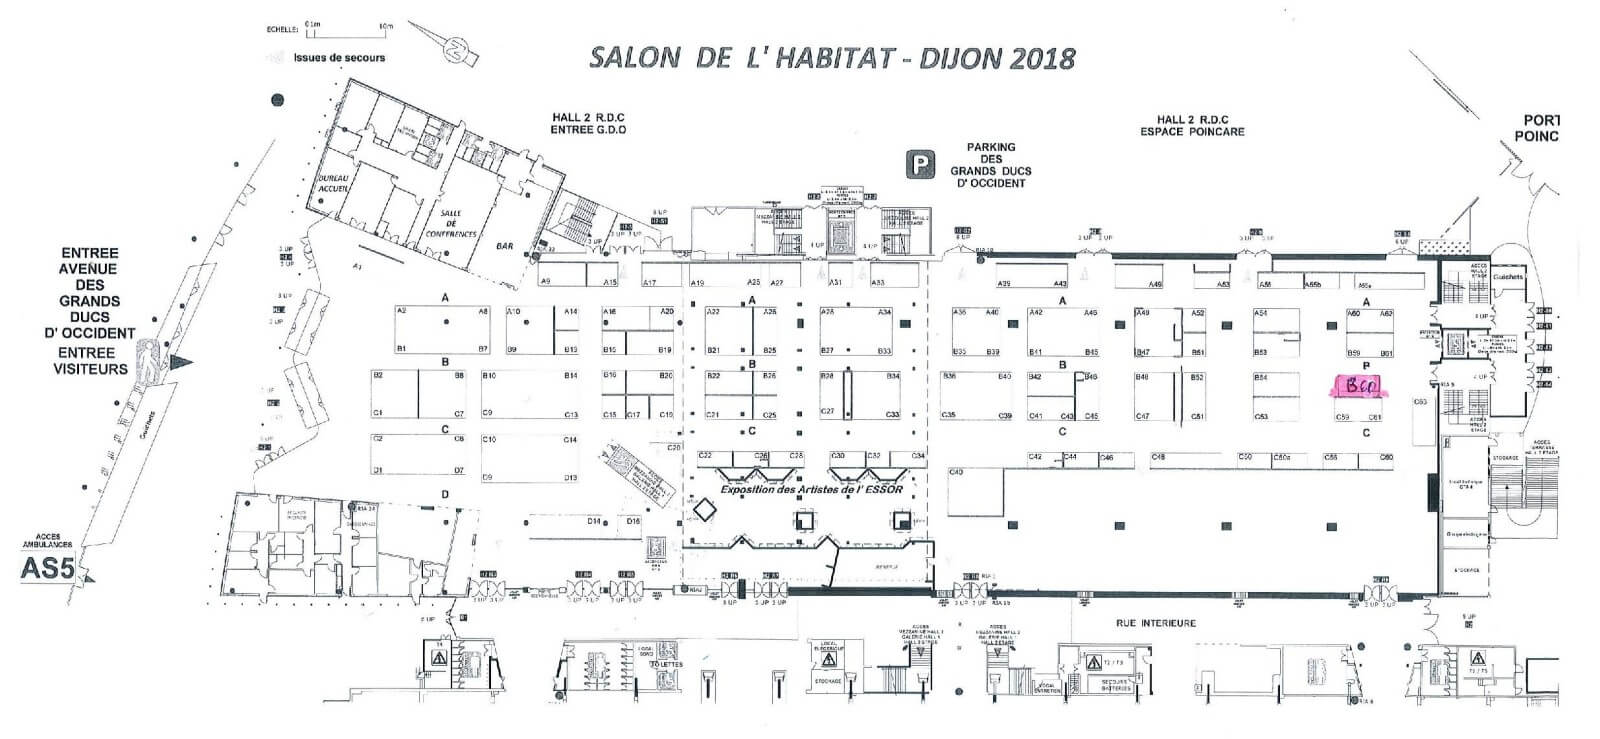 Salon habitat esyom esyom for Salon de l habitat colmar